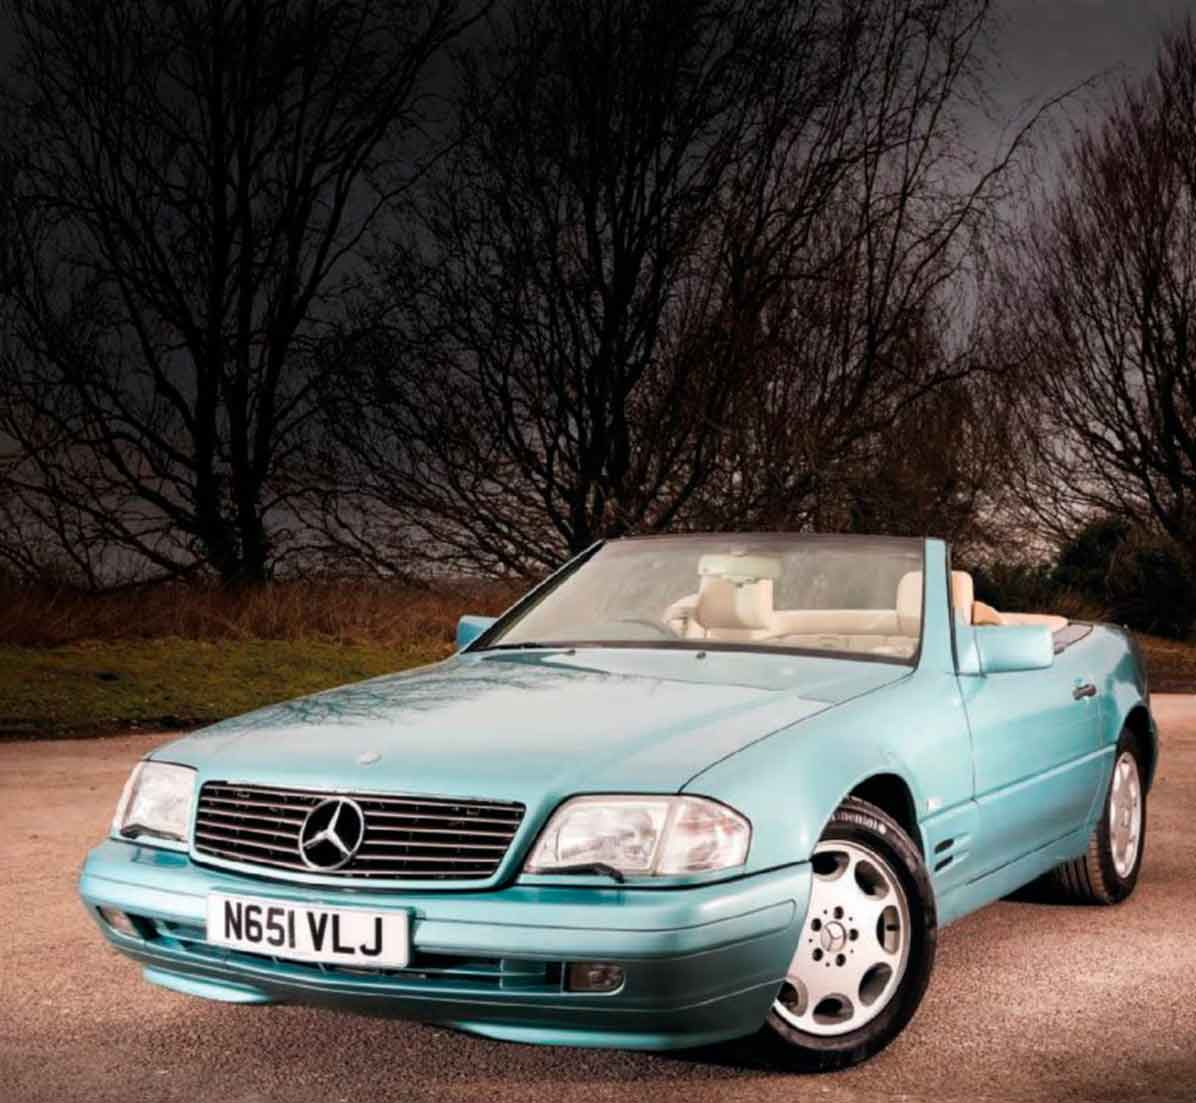 Buyer's Guide Mercedes-Benz R129 SL - Drive-My Blogs - Drive